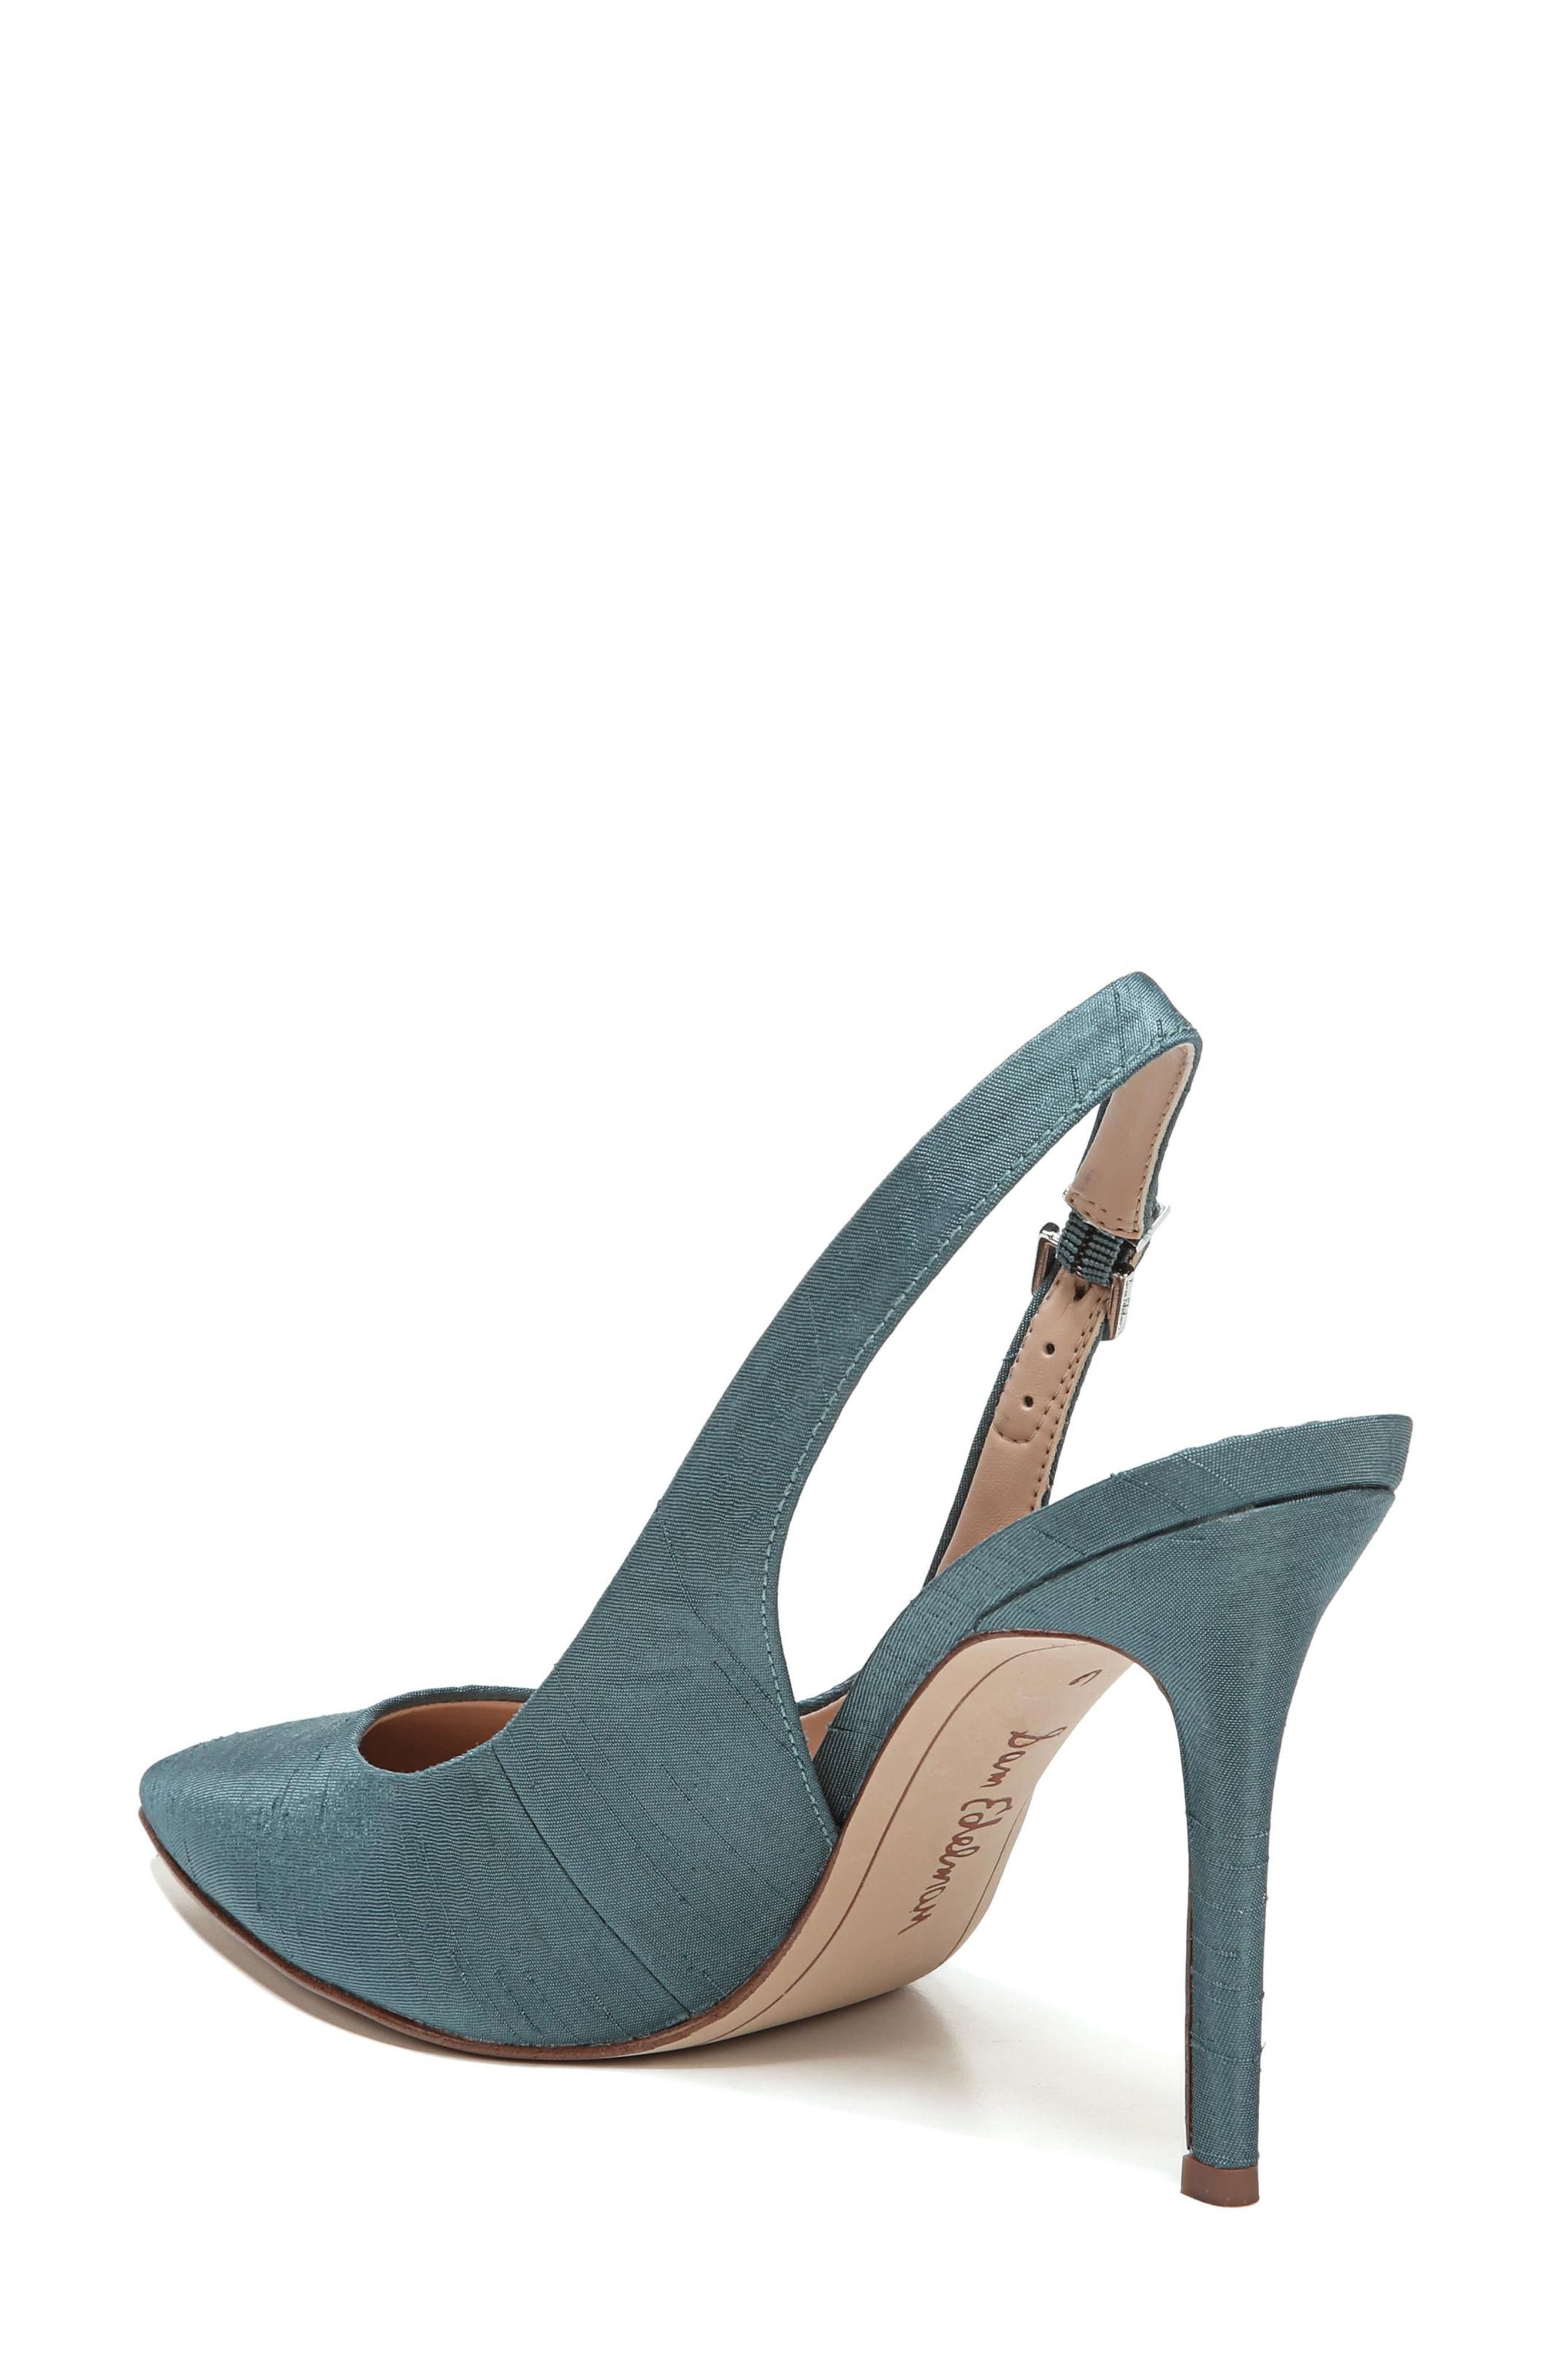 Hastings Slingback Pump,                             Alternate thumbnail 2, color,                             Blue Shadow